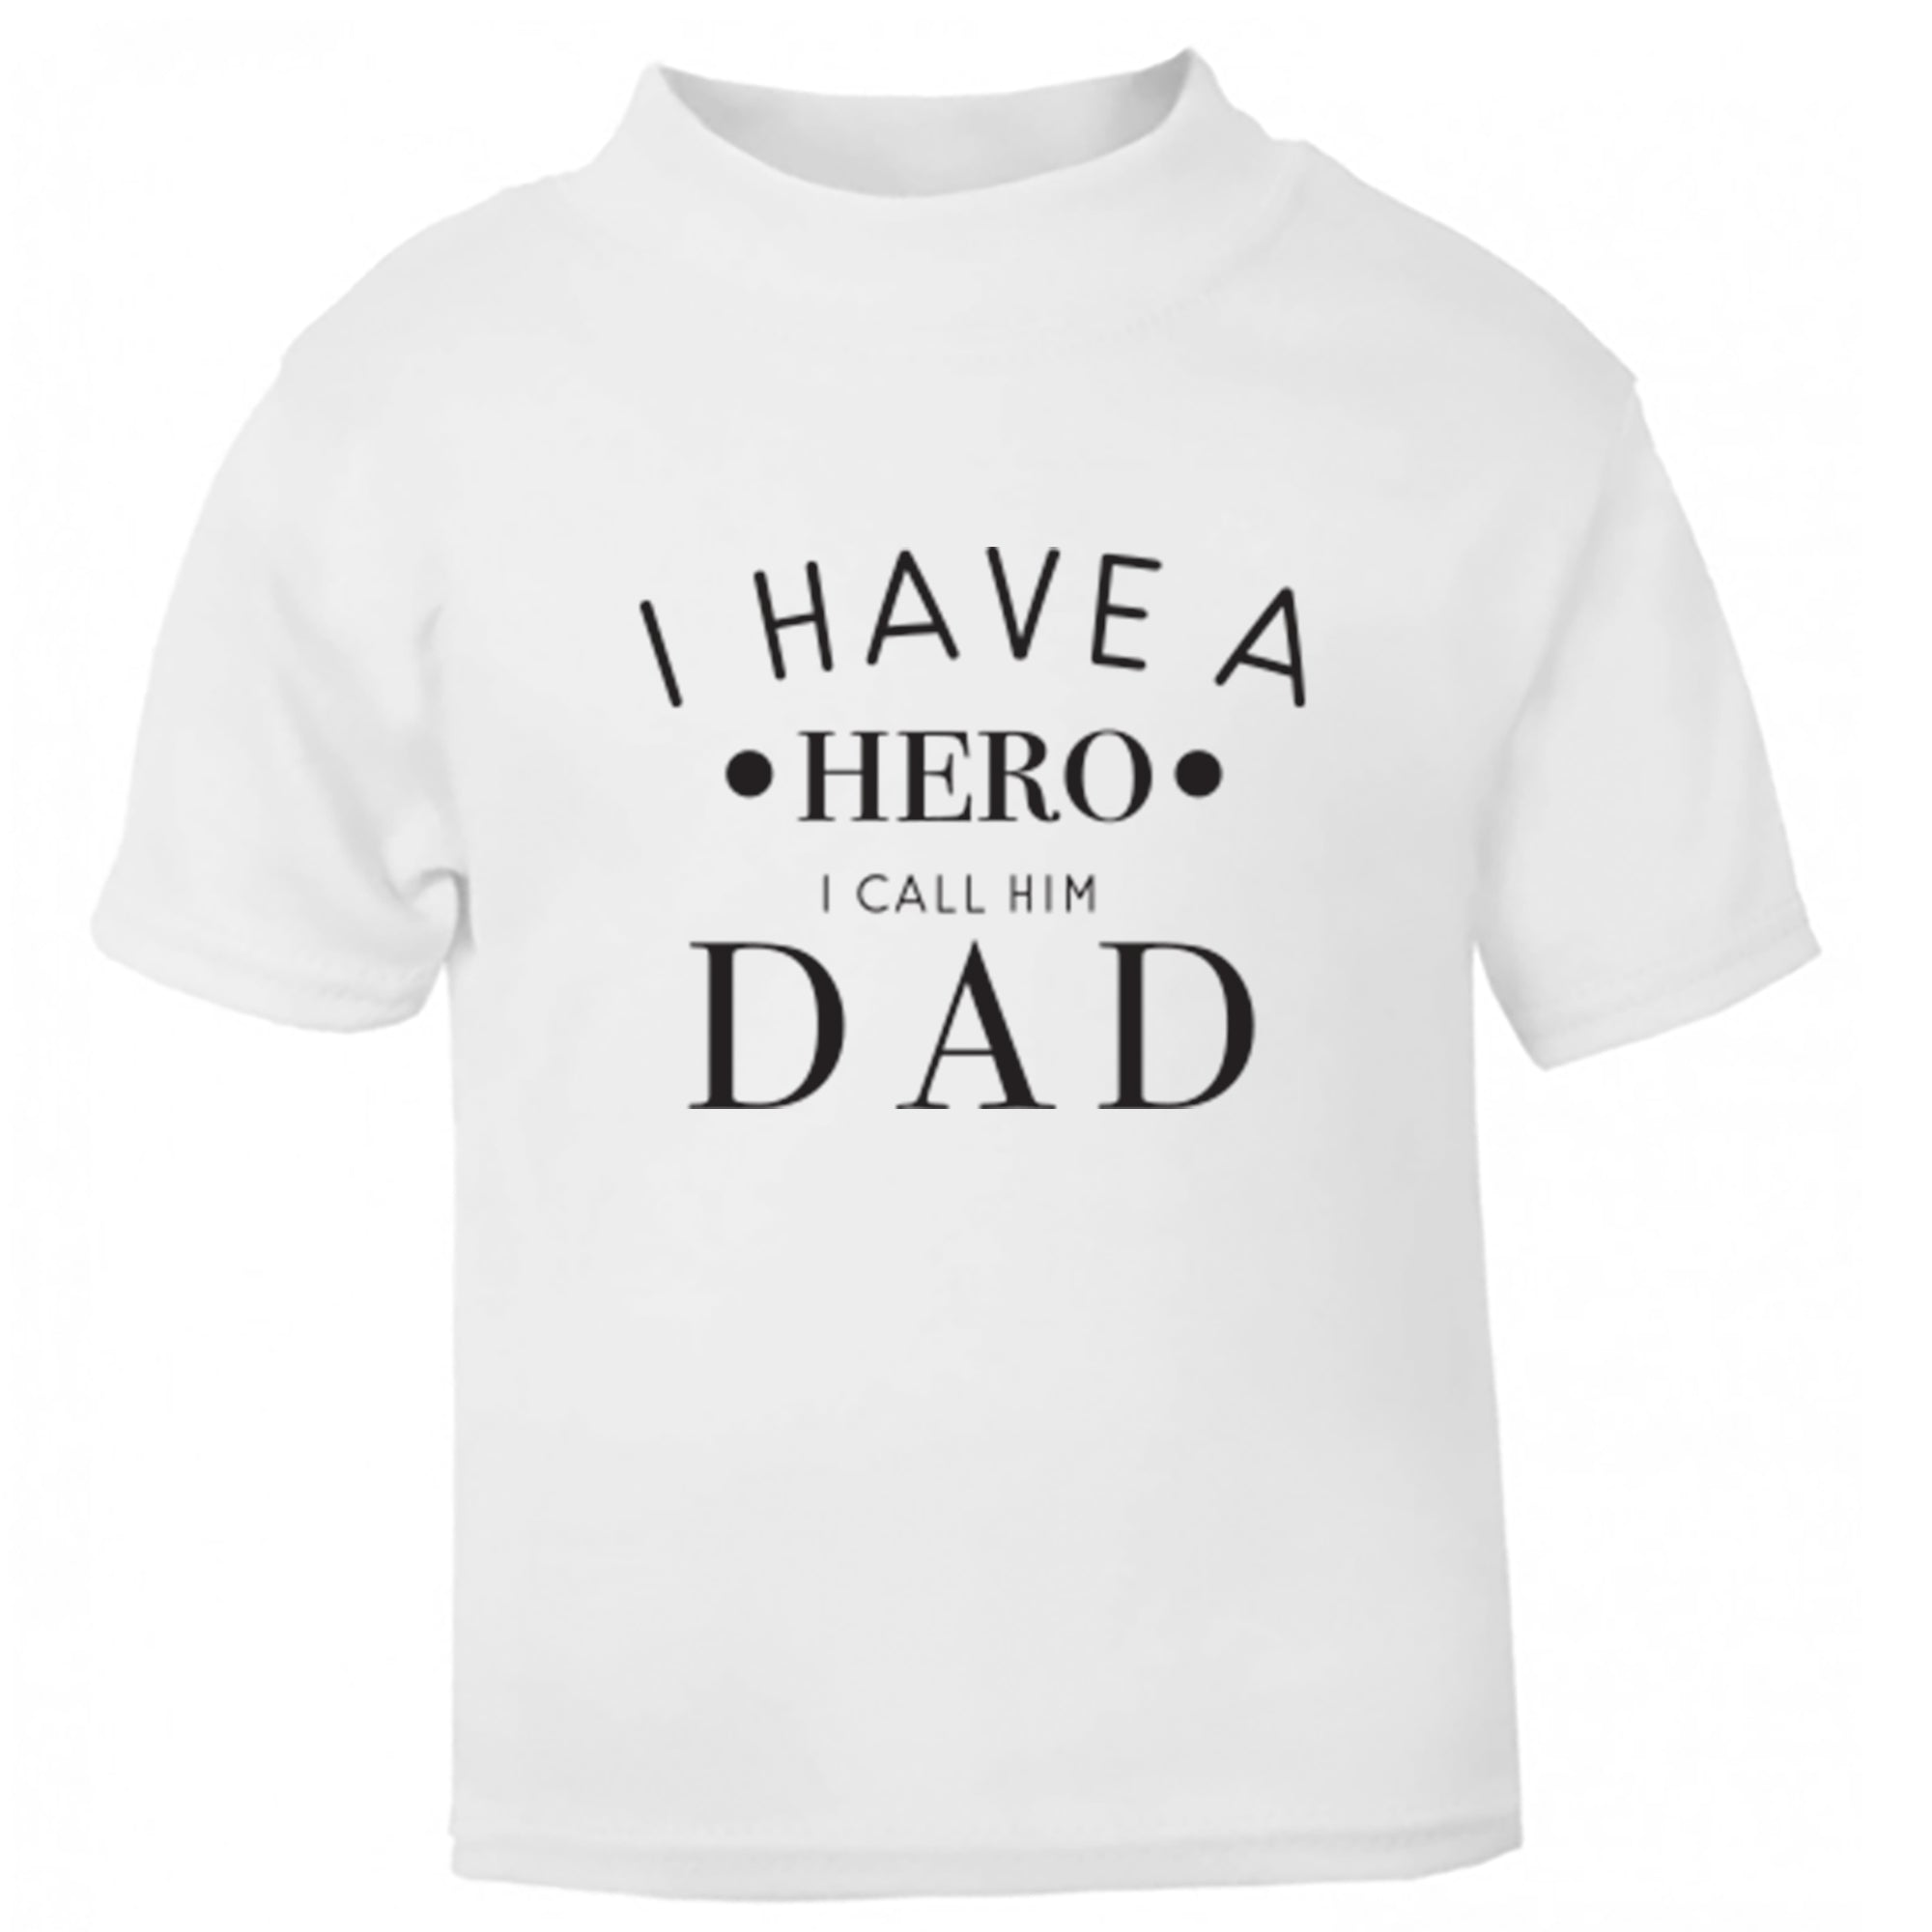 I Have A Hero I Call Him Dad Childrens Ages 3/4-12/14 Unisex Fit T-Shirt S0720